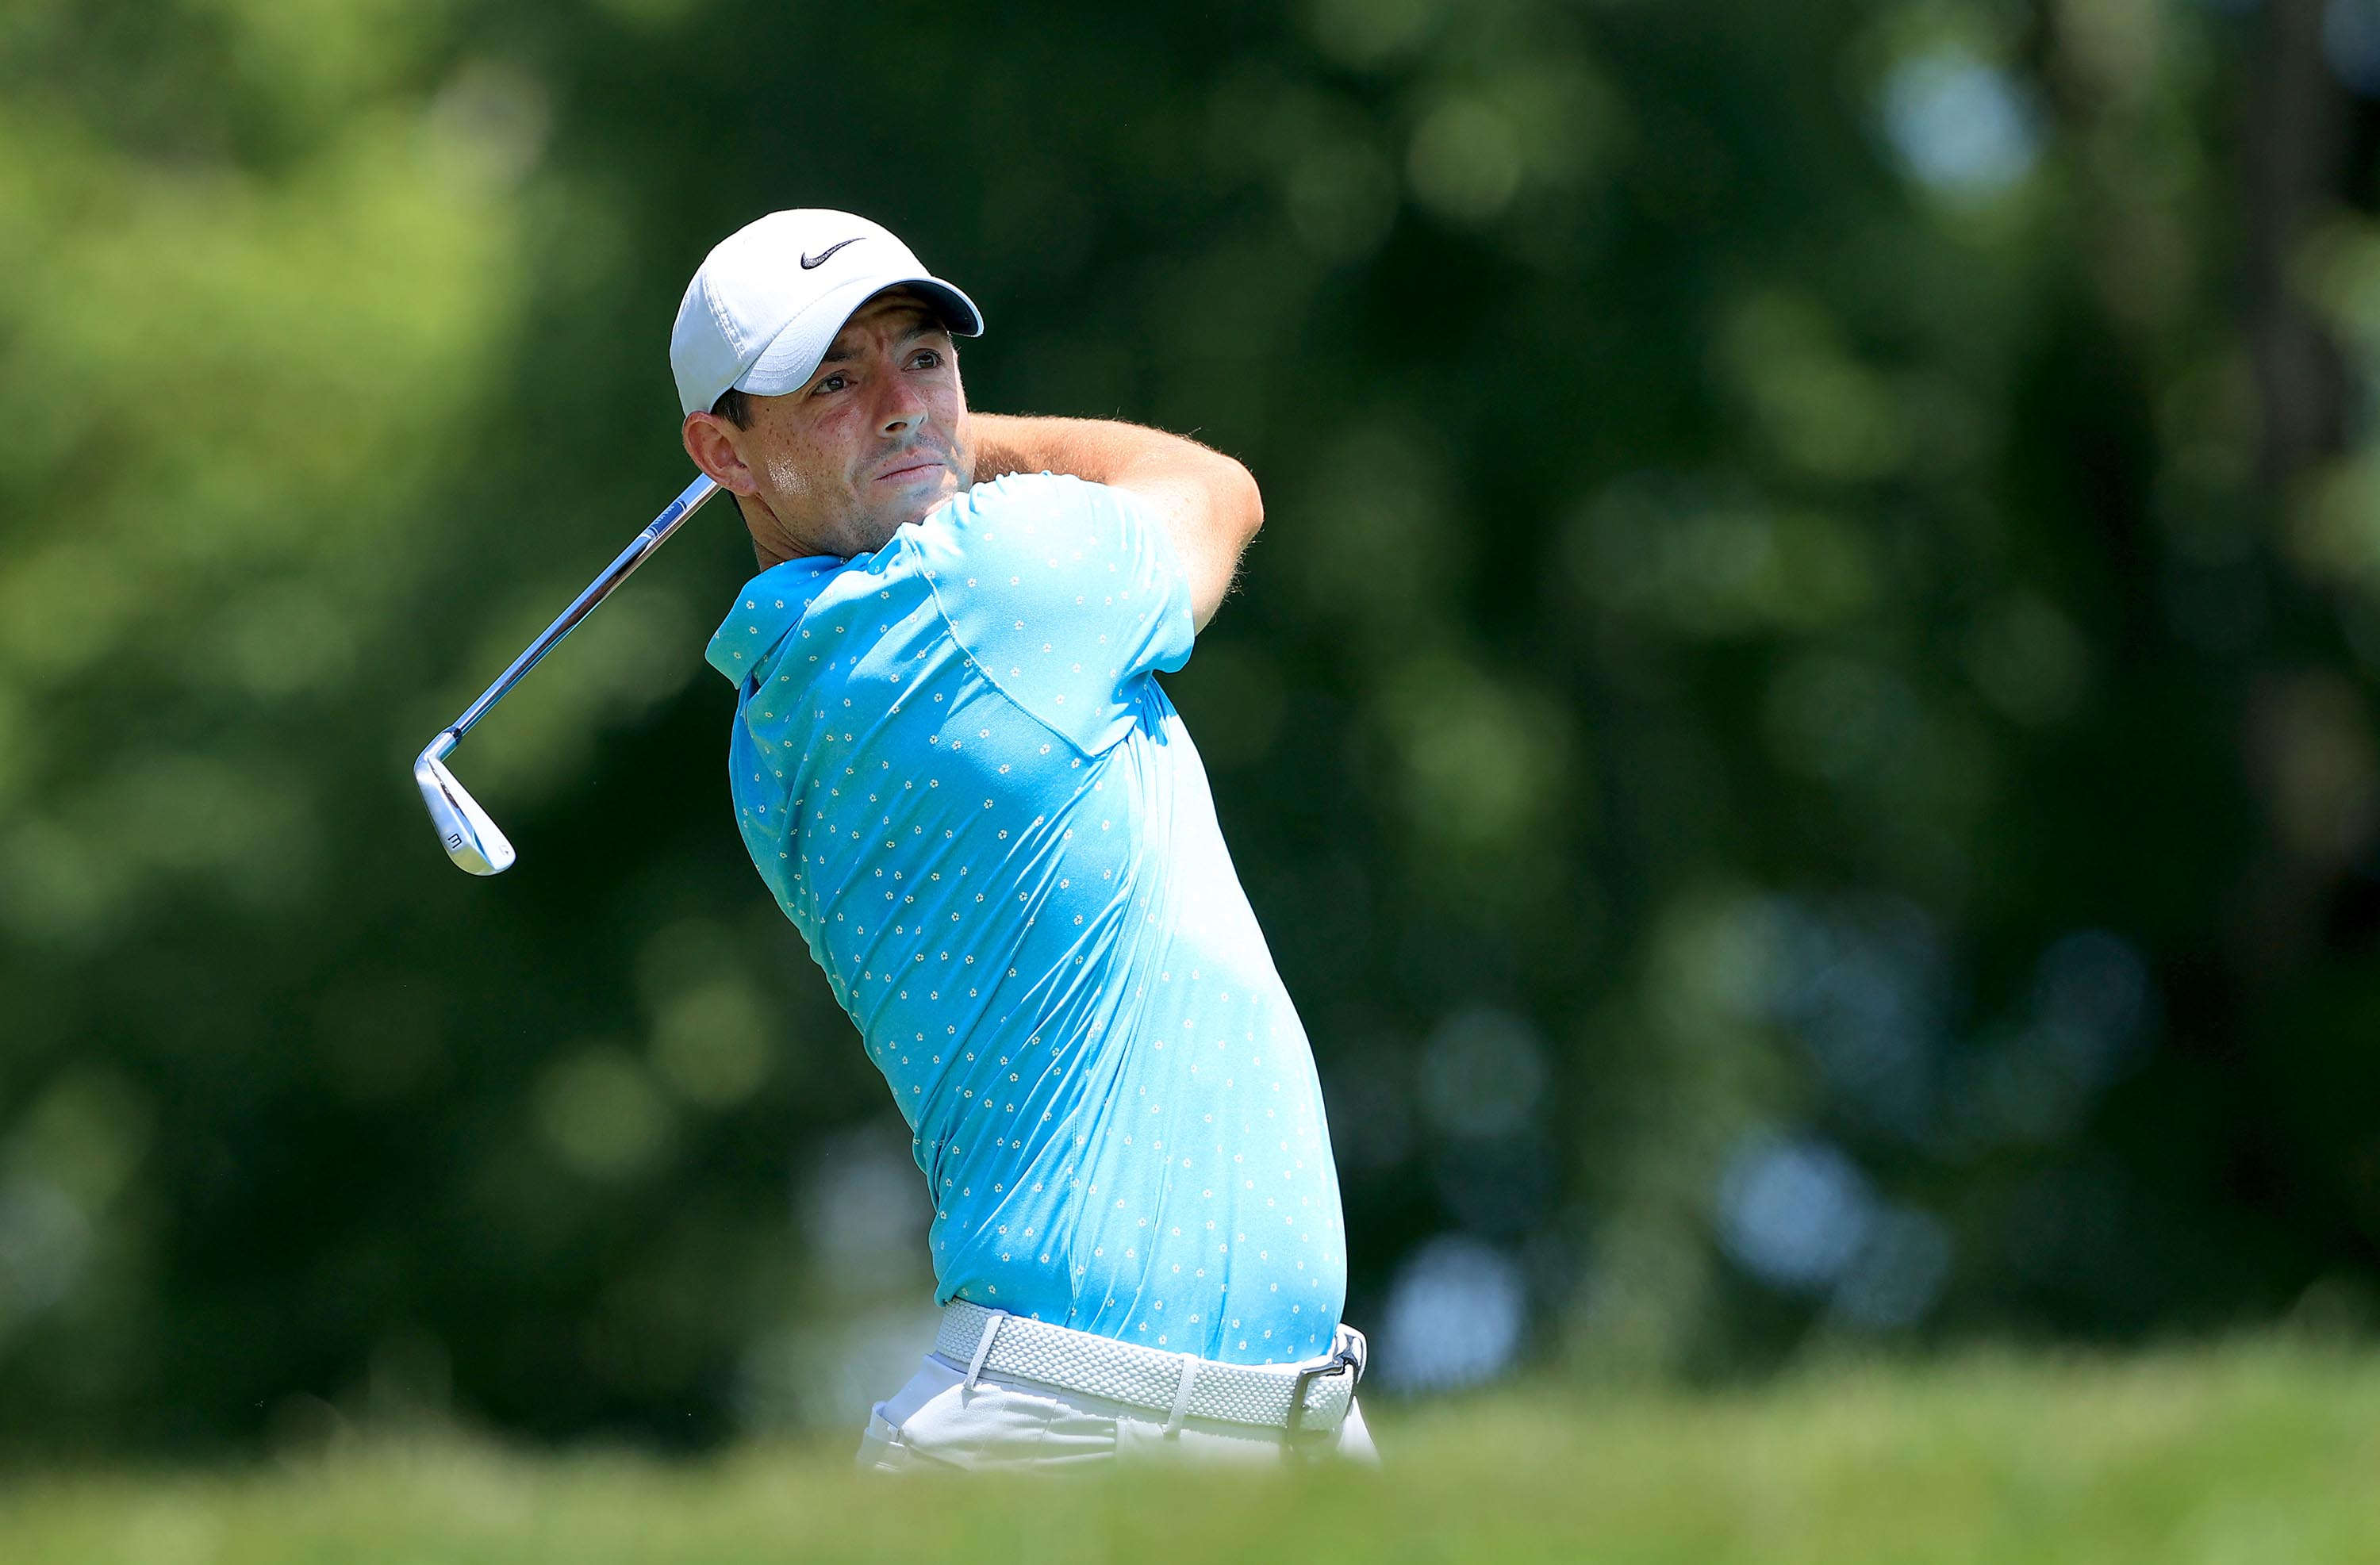 Rory McIlroy of Northern Ireland plays his shot from the fourth tee during the third round of The Memorial Tournament at Muirfield Village Golf Club in Dublin, Ohio, on July 18.